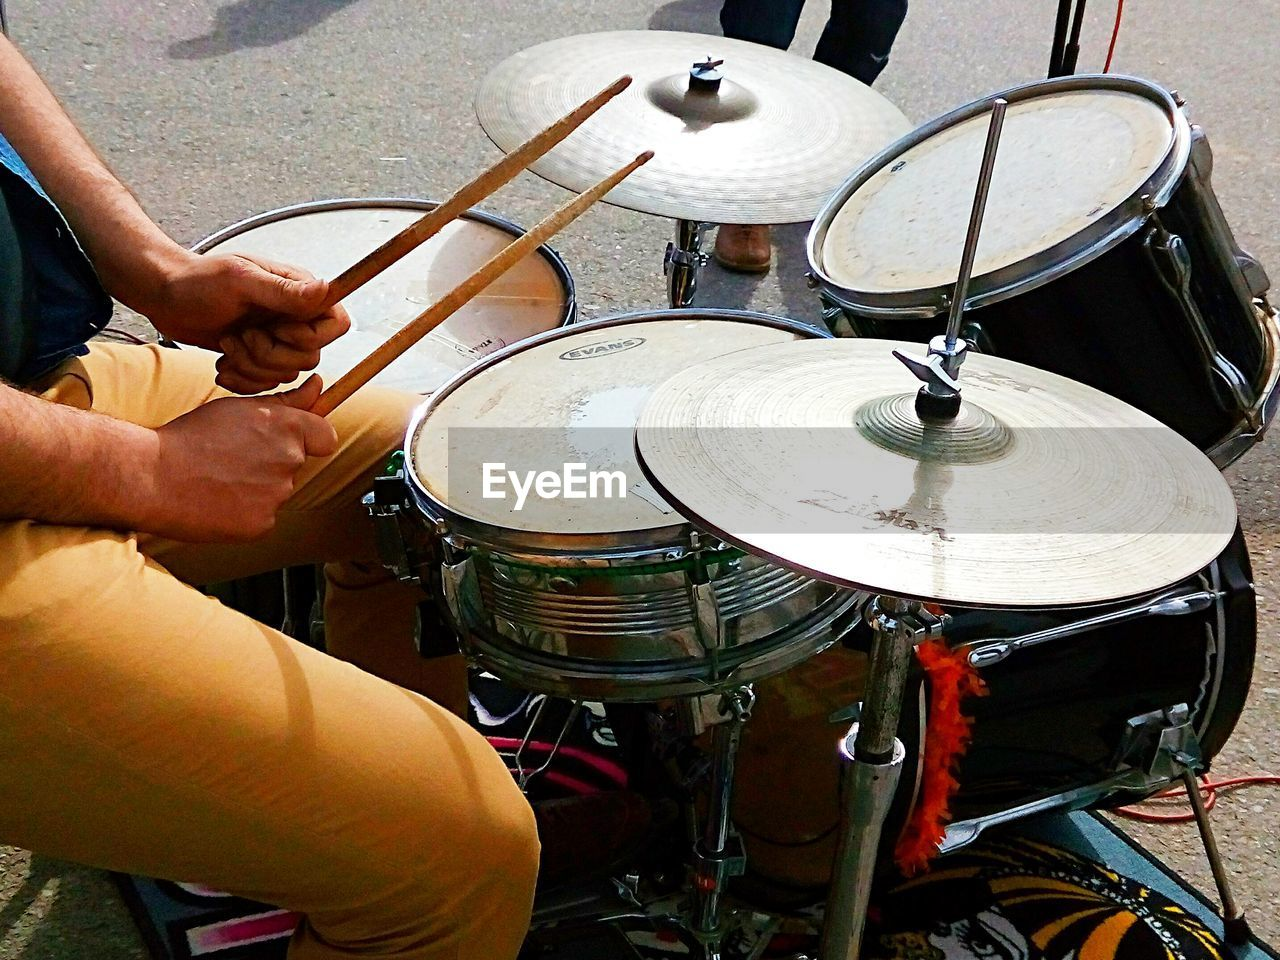 music, drum - percussion instrument, musical instrument, drumstick, drummer, drum kit, arts culture and entertainment, musician, musical equipment, human hand, cymbal, real people, human body part, one person, men, playing, holding, indoors, recording studio, skill, sitting, people, day, close-up, adult